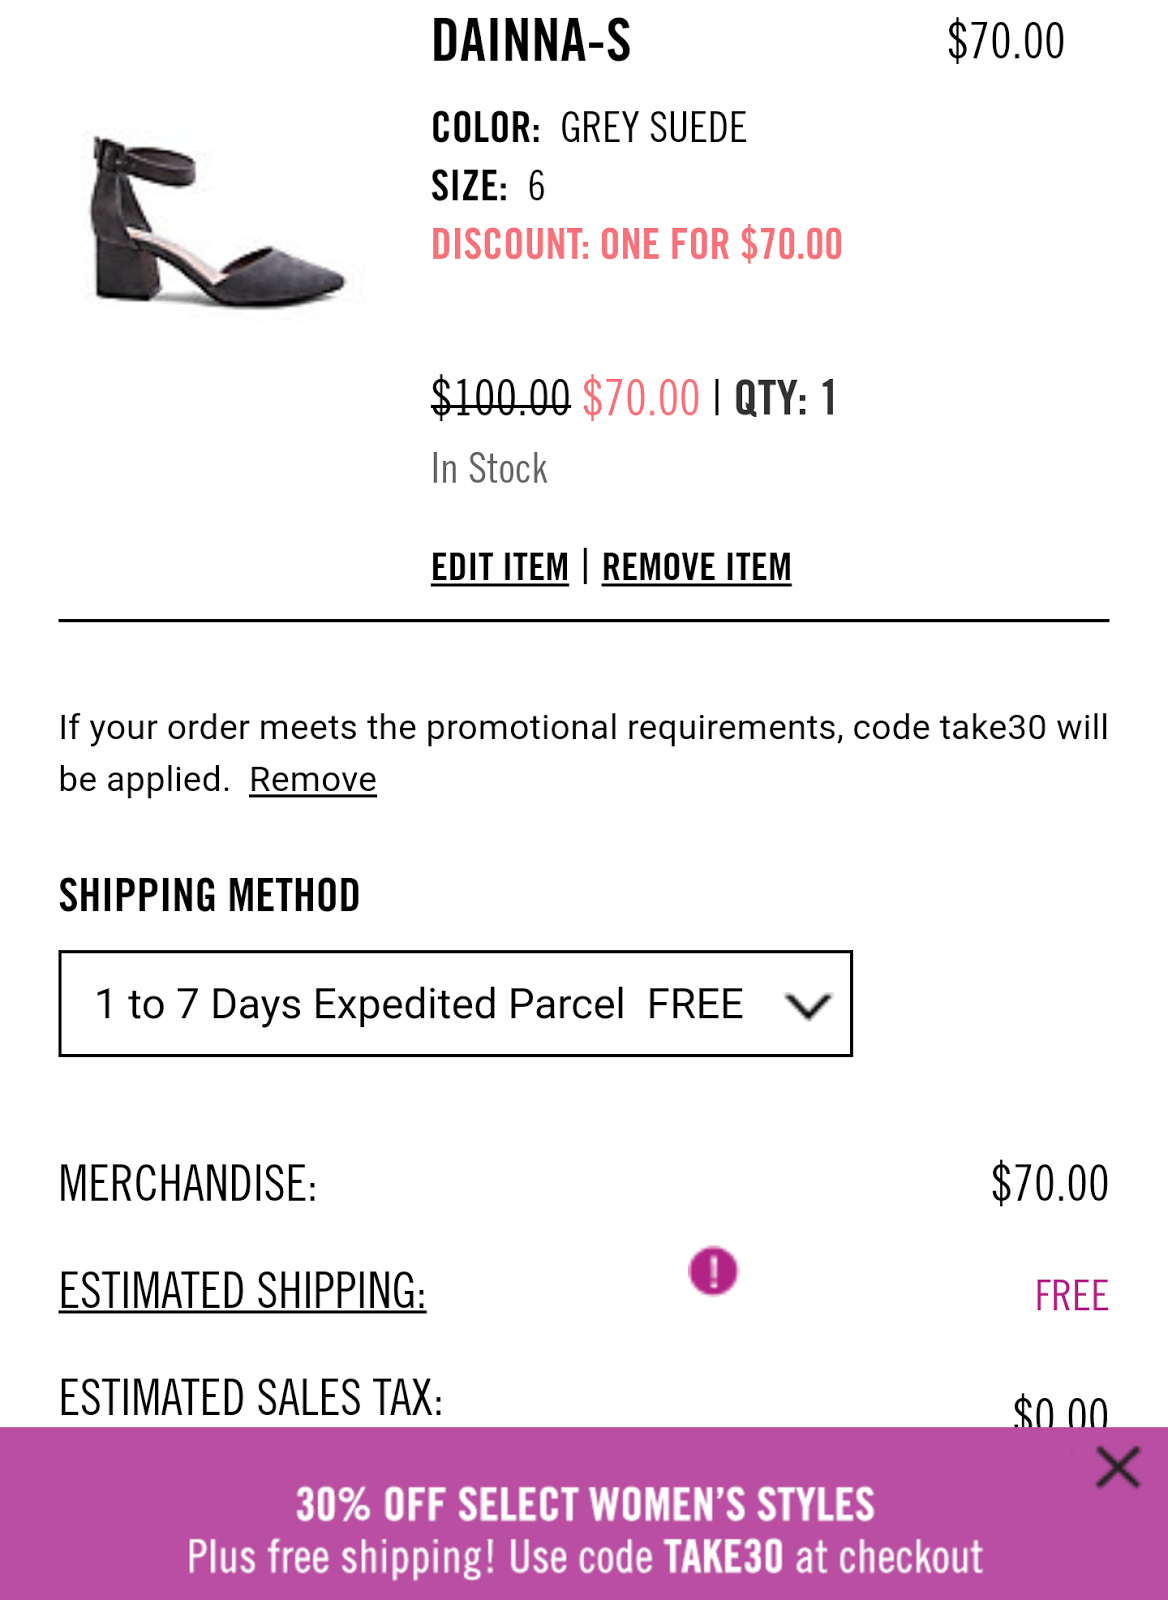 21ef6a1ce So fortunate that my Dainna-S pair of shoes is one of the select women's  styles, so I was able to punch in and apply the given shopping code TAKE30  (also ...